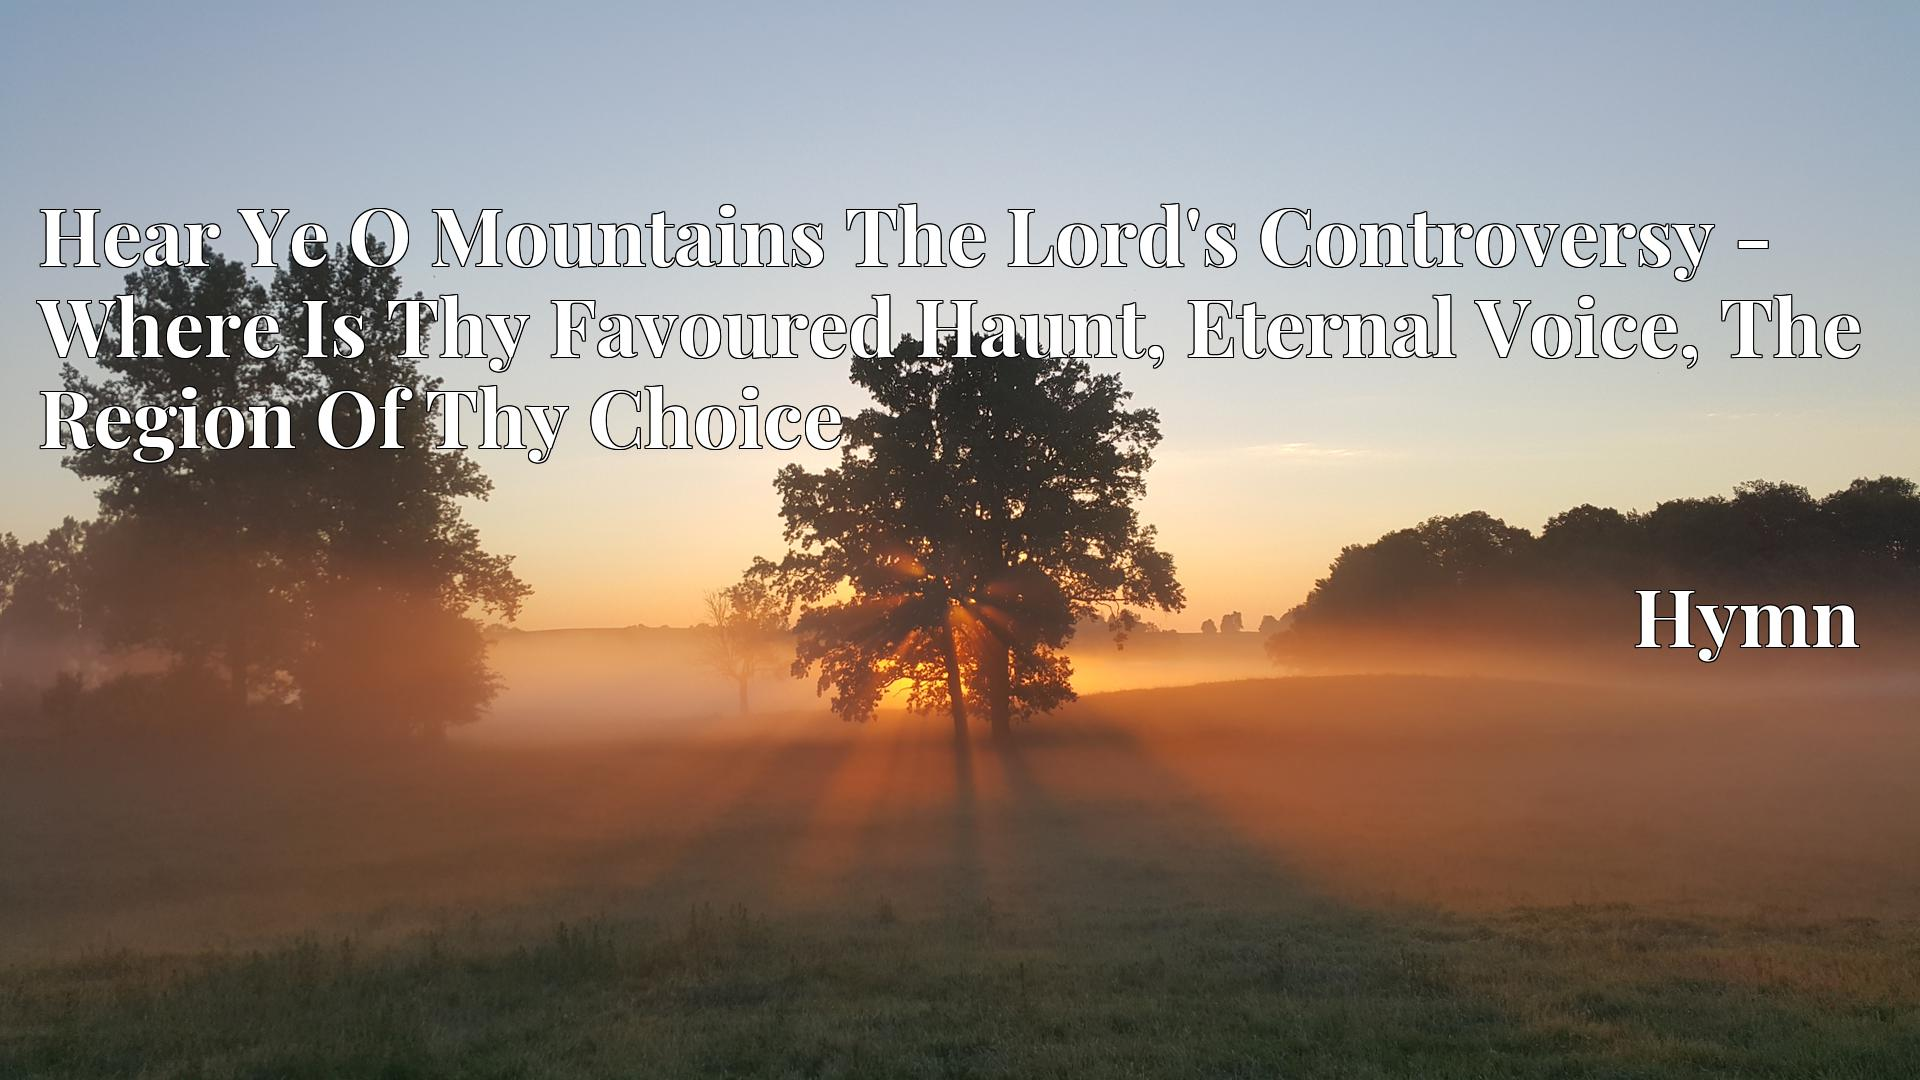 Hear Ye O Mountains The Lord's Controversy - Where Is Thy Favoured Haunt, Eternal Voice, The Region Of Thy Choice Hymn